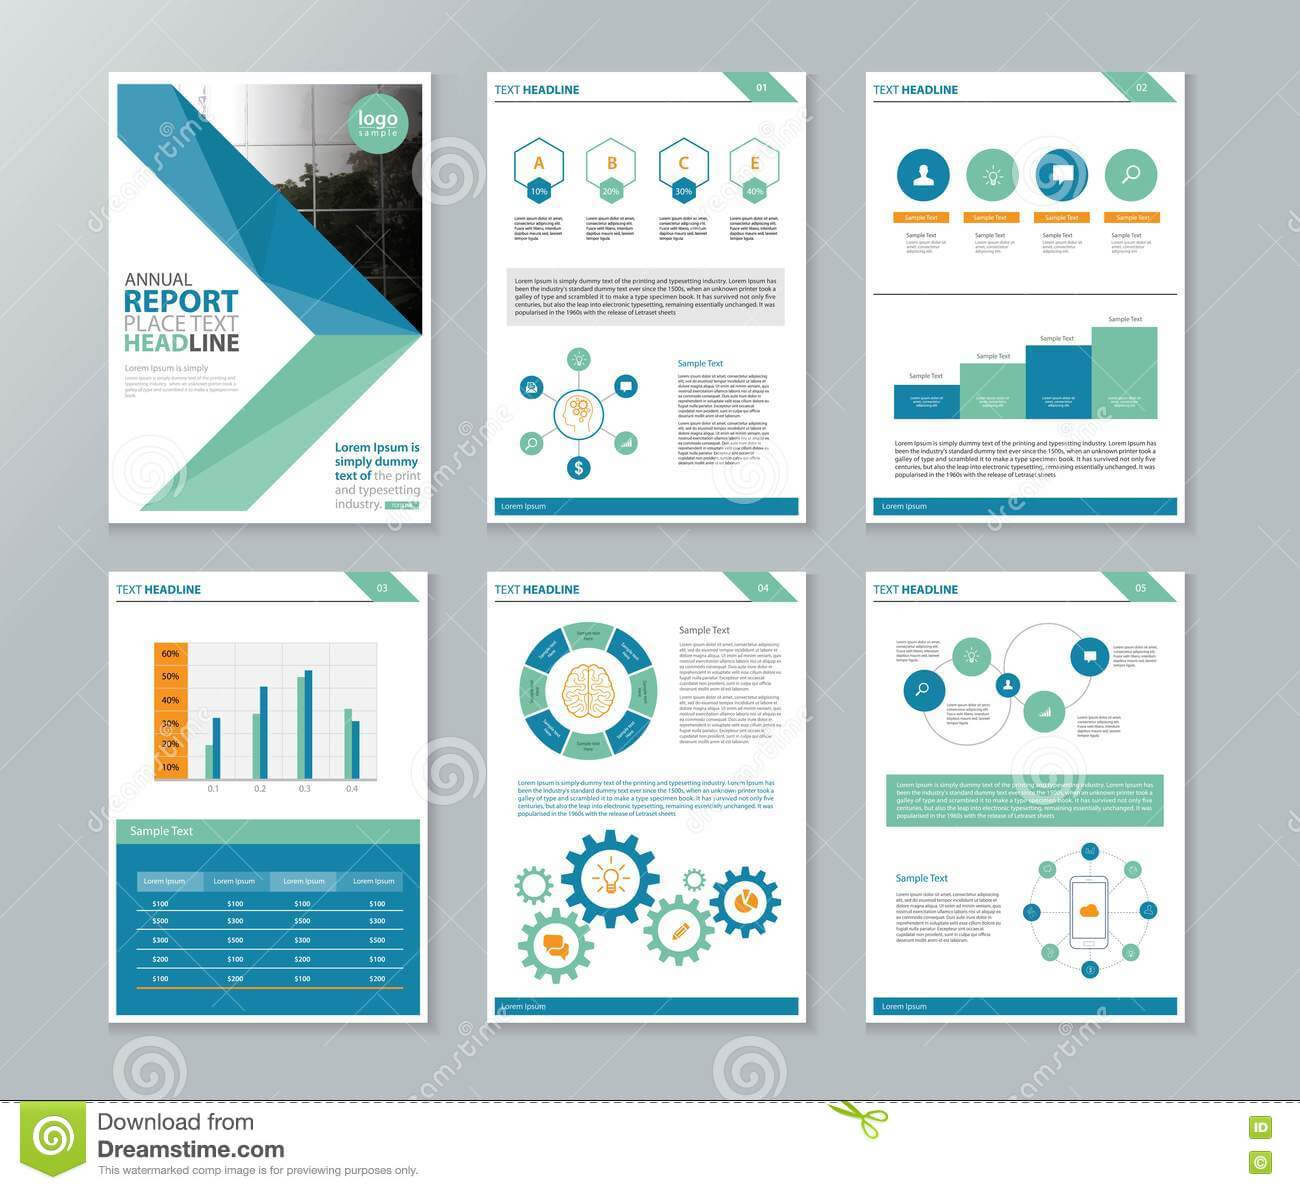 038 Annual Report Template Word Company Profile Brochure With Regard To Annual Report Template Word Free Download